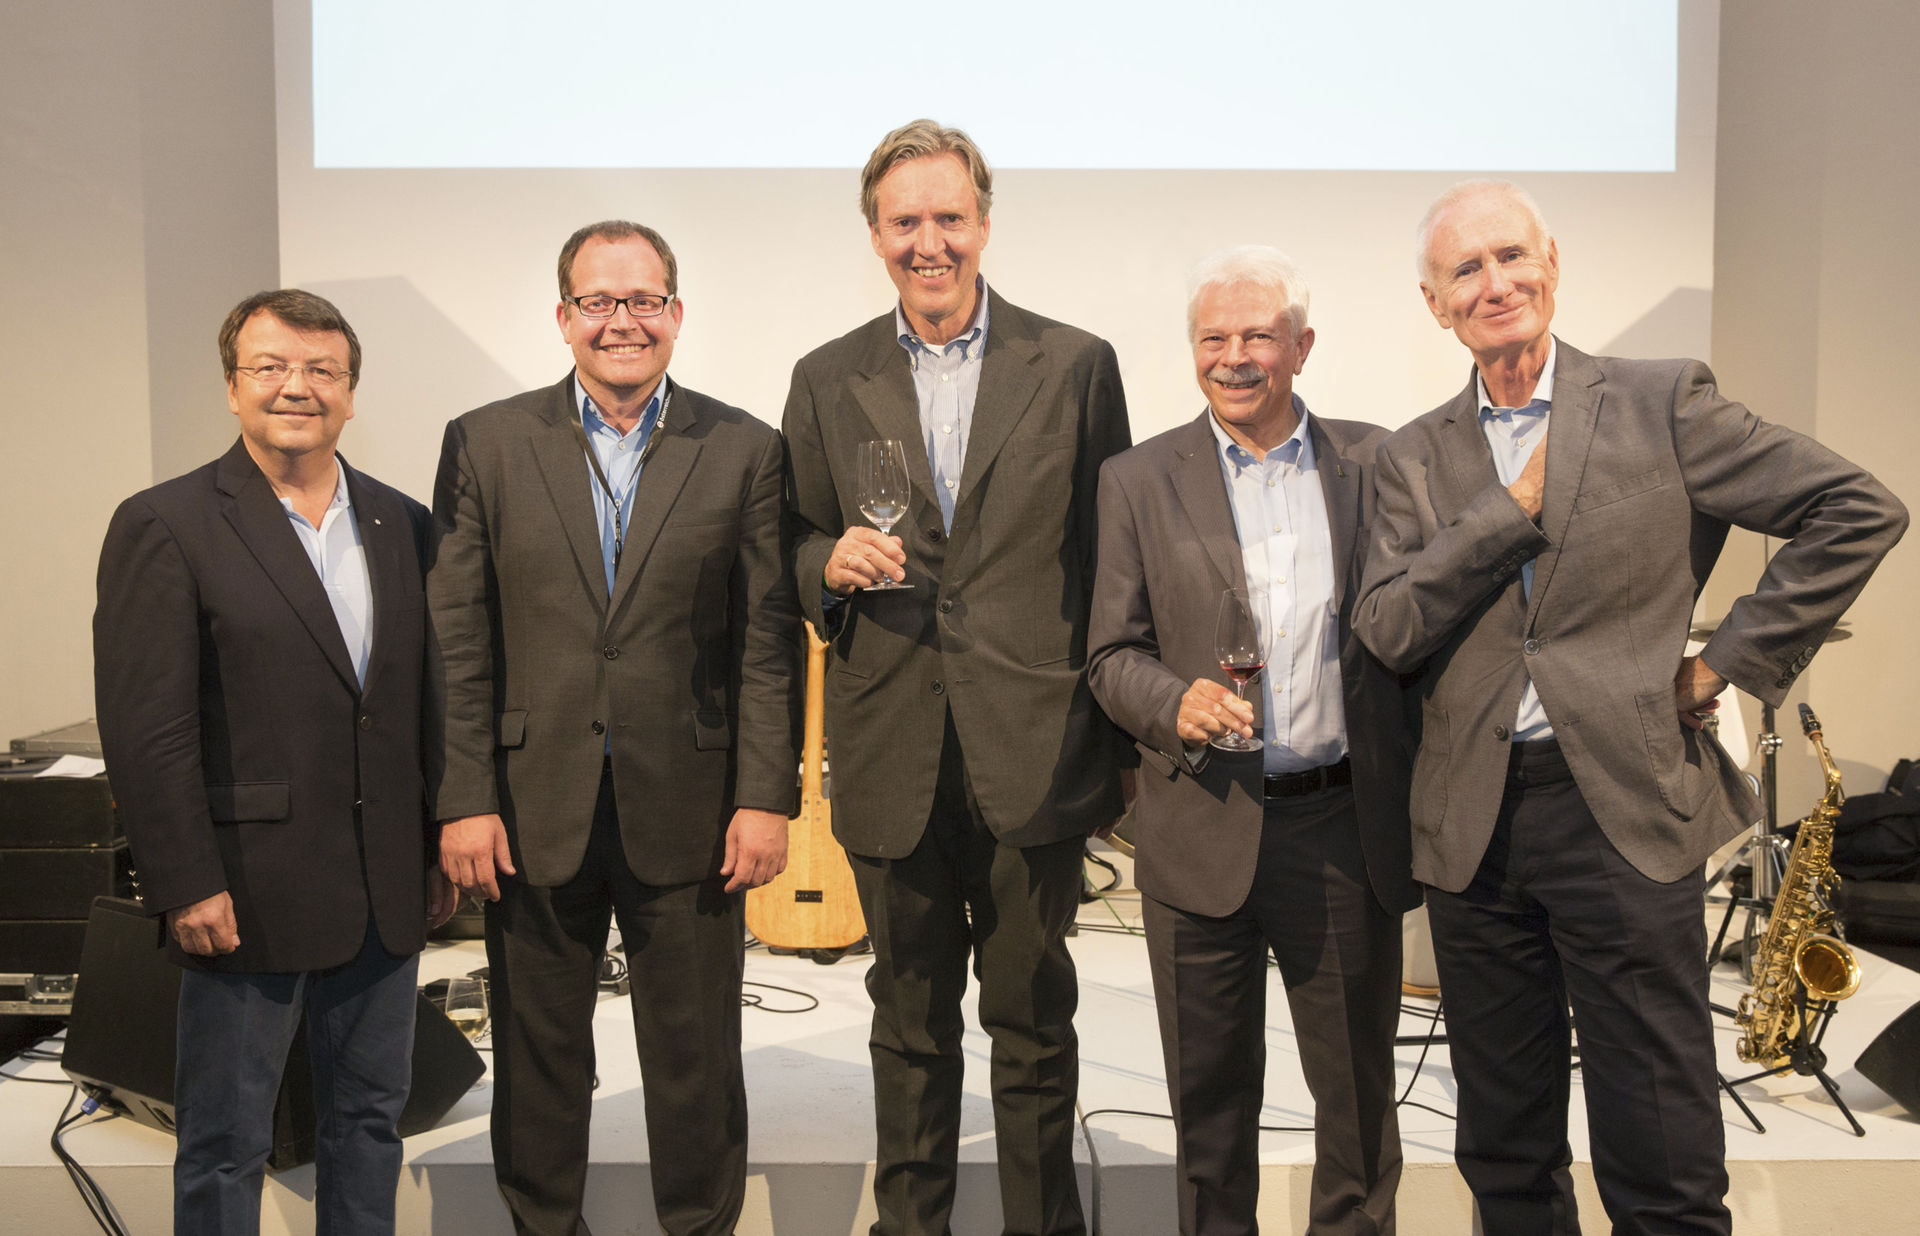 A picture shows the Managing Directors of the AWMB of the last three decades: fltr Willi Klinger, Michael Thurner, Bertold Salomon, Walter Kutscher, Wolfgang Lusak, © Austrian Wine/Anna Stöcher